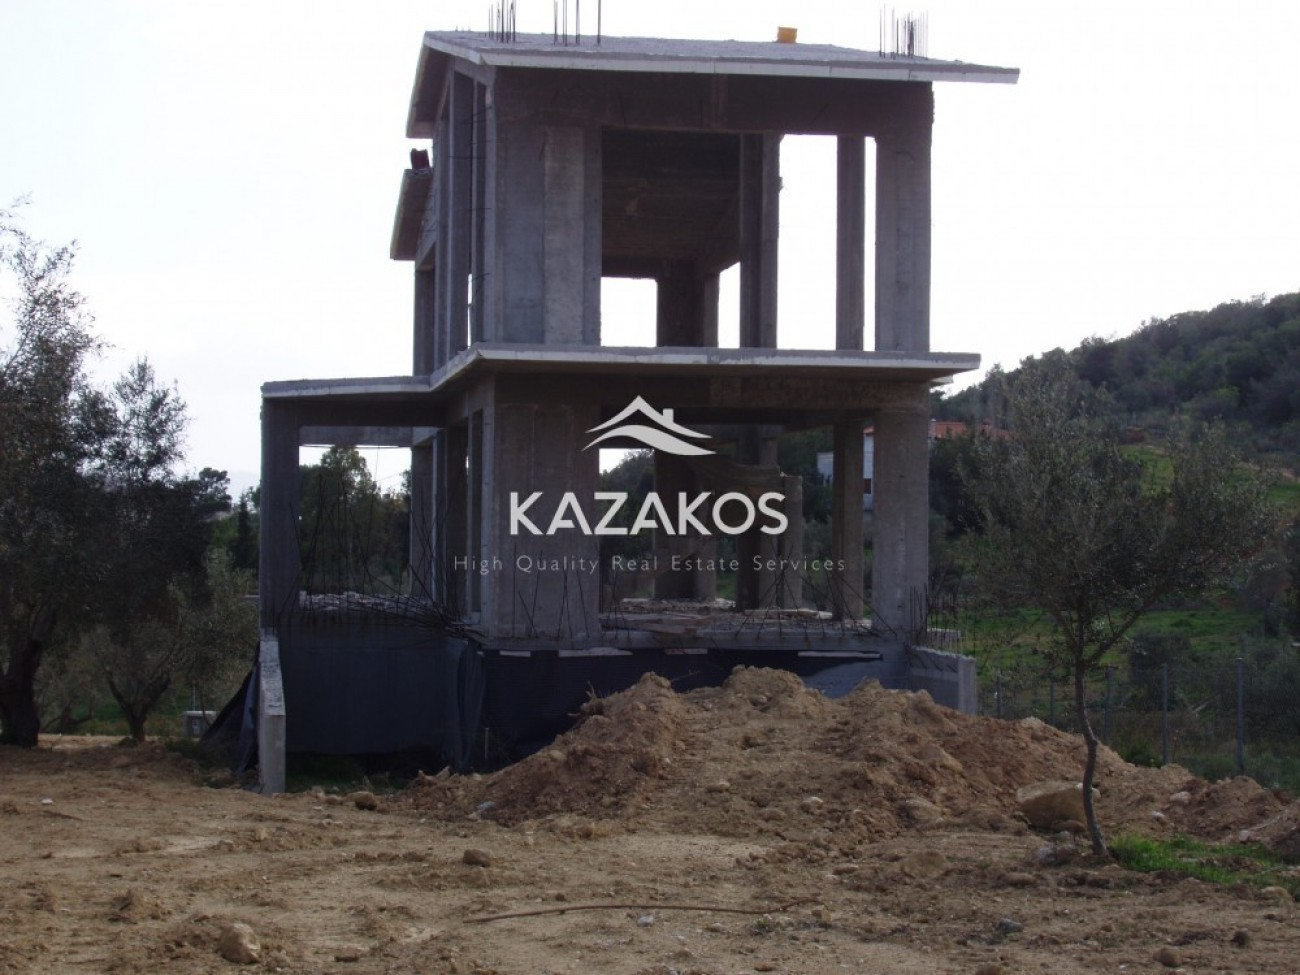 House for Sale in Imeros Pefkos, Spata, Athens - East